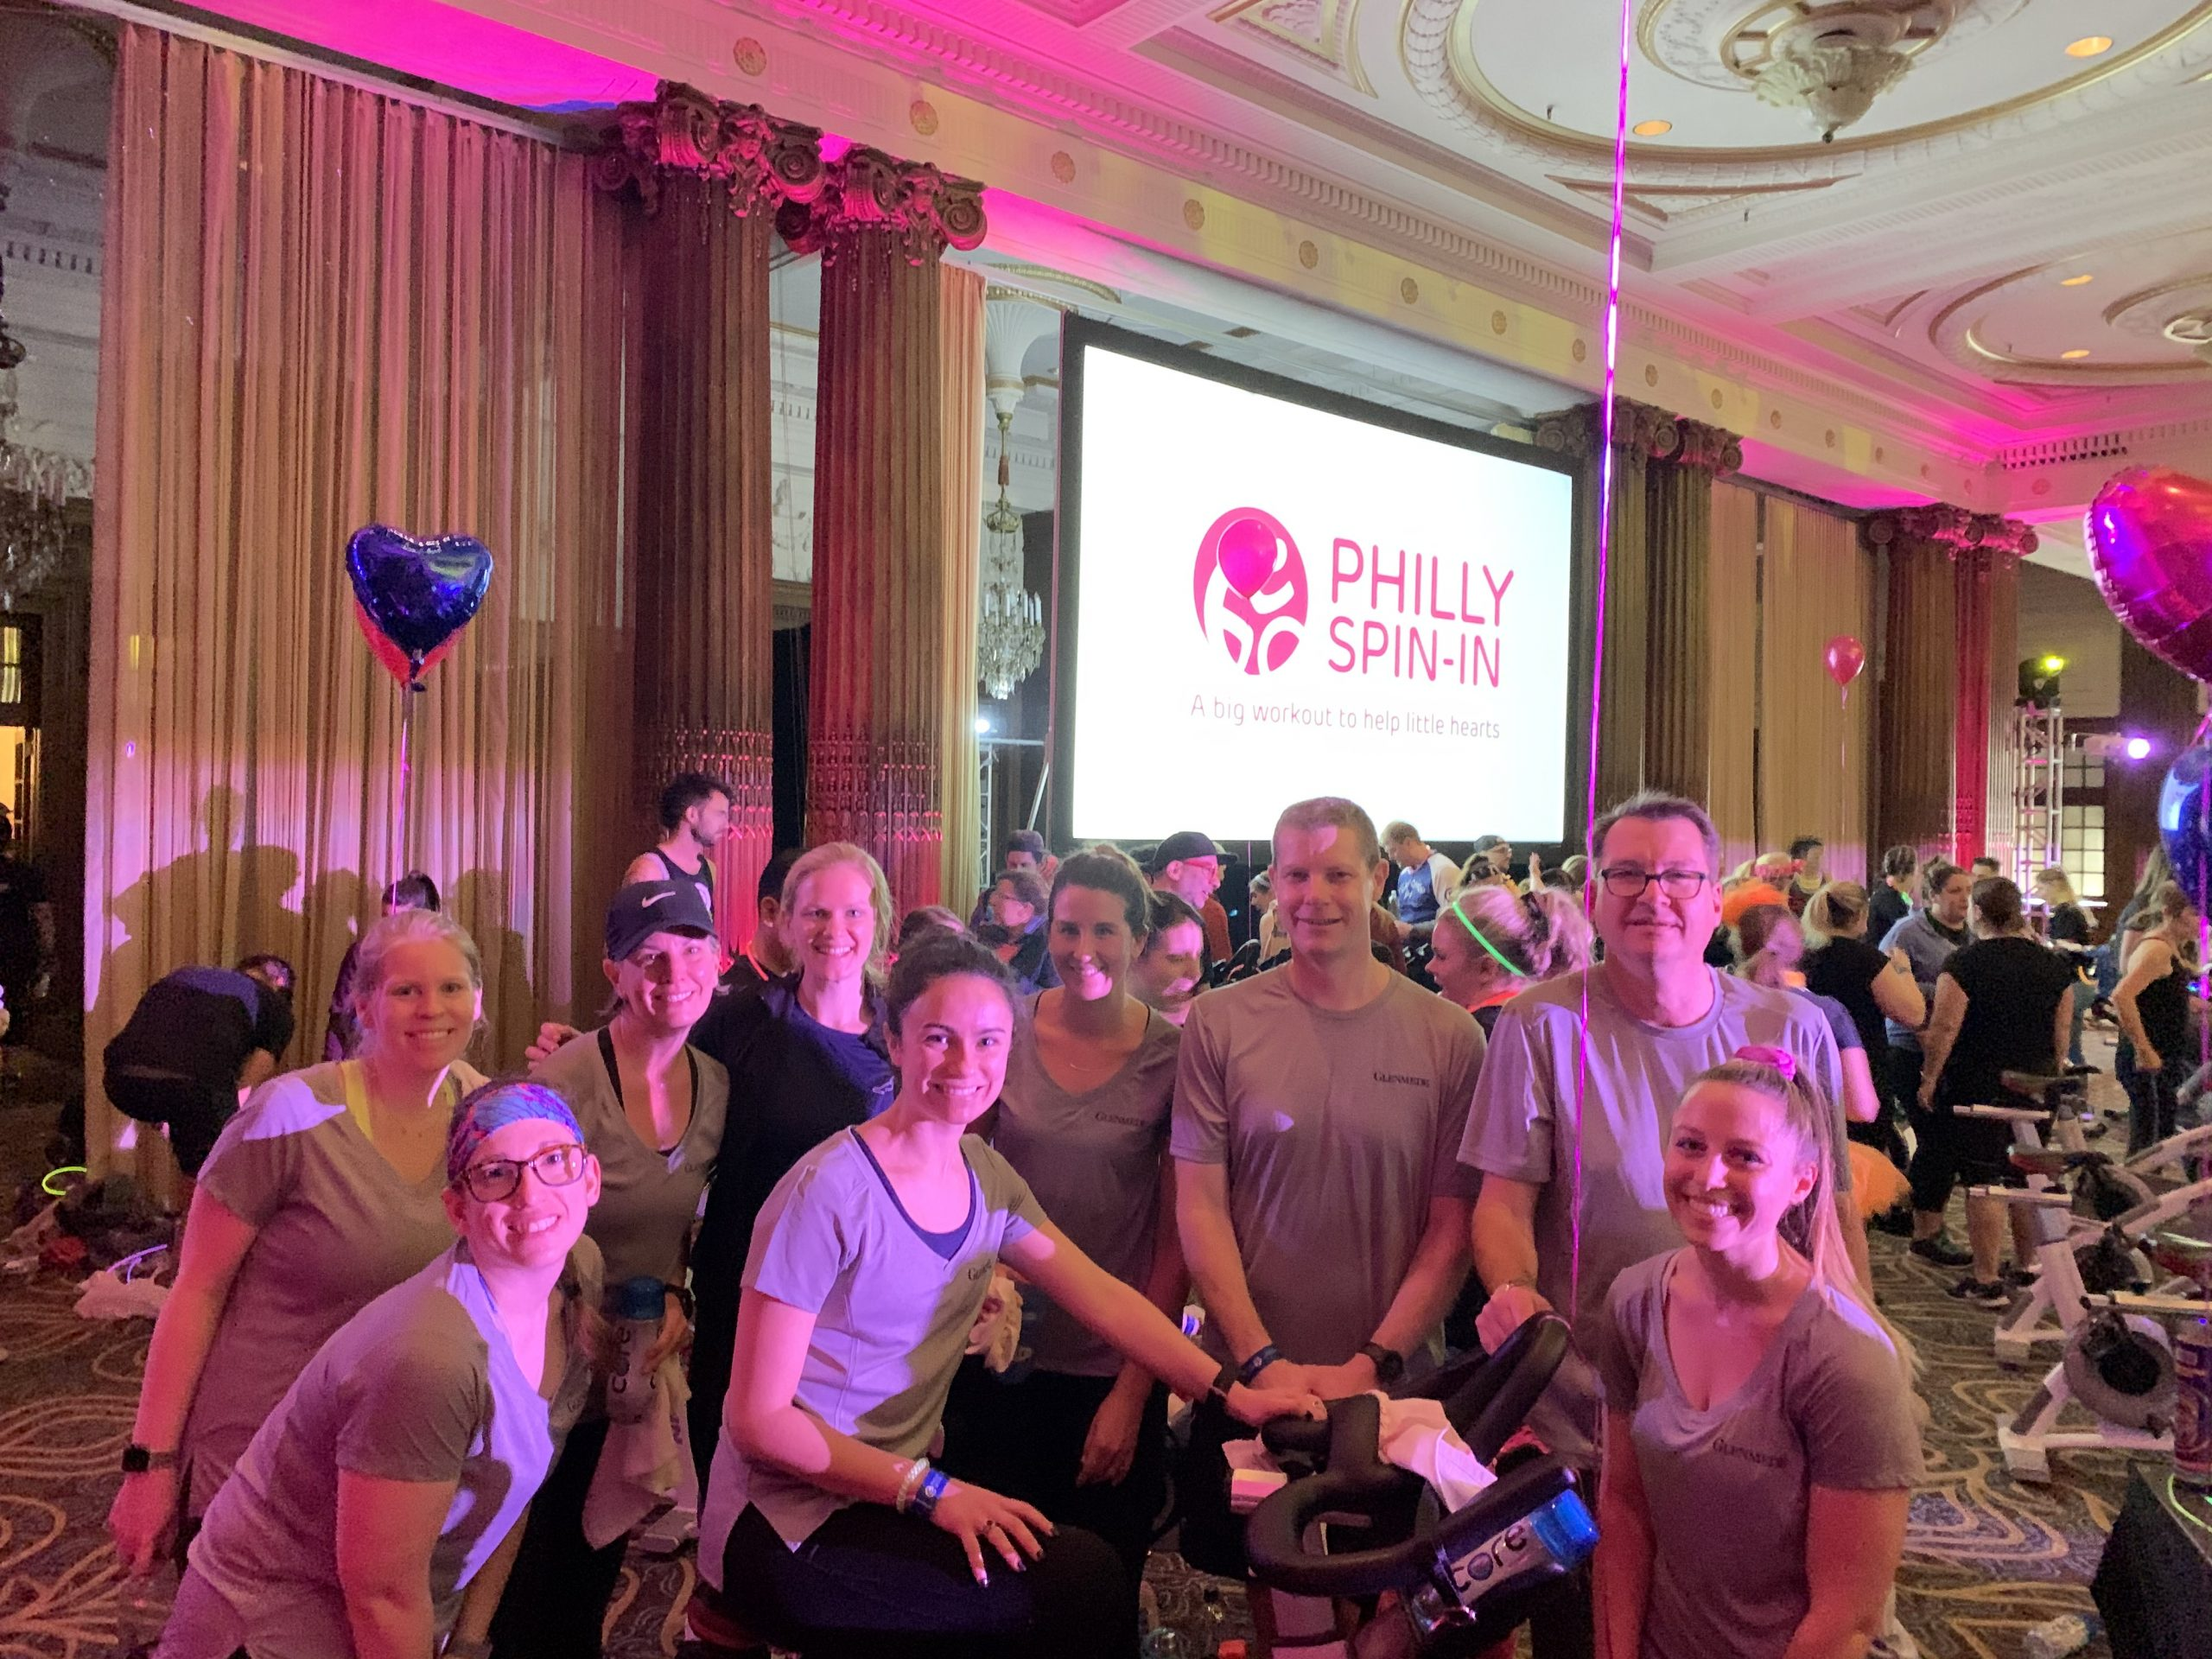 Stewardship - Philly spin-in for employee health and wellness